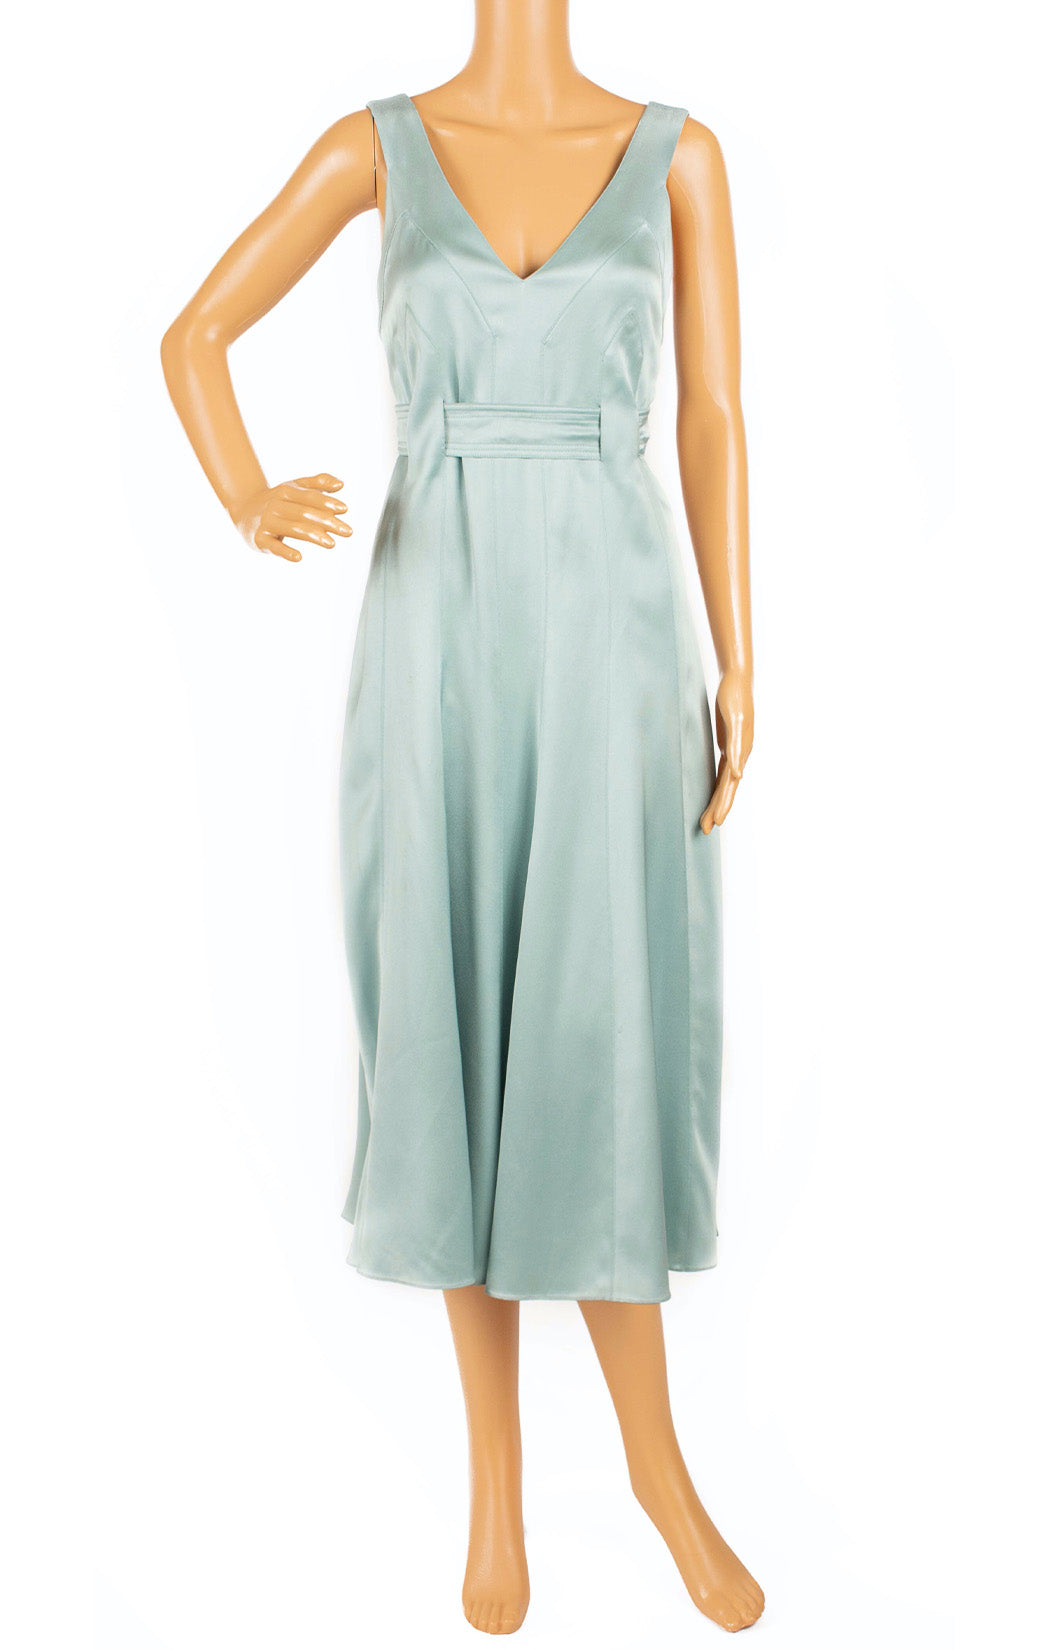 Front view of NINA RICCI Dress Size: 8